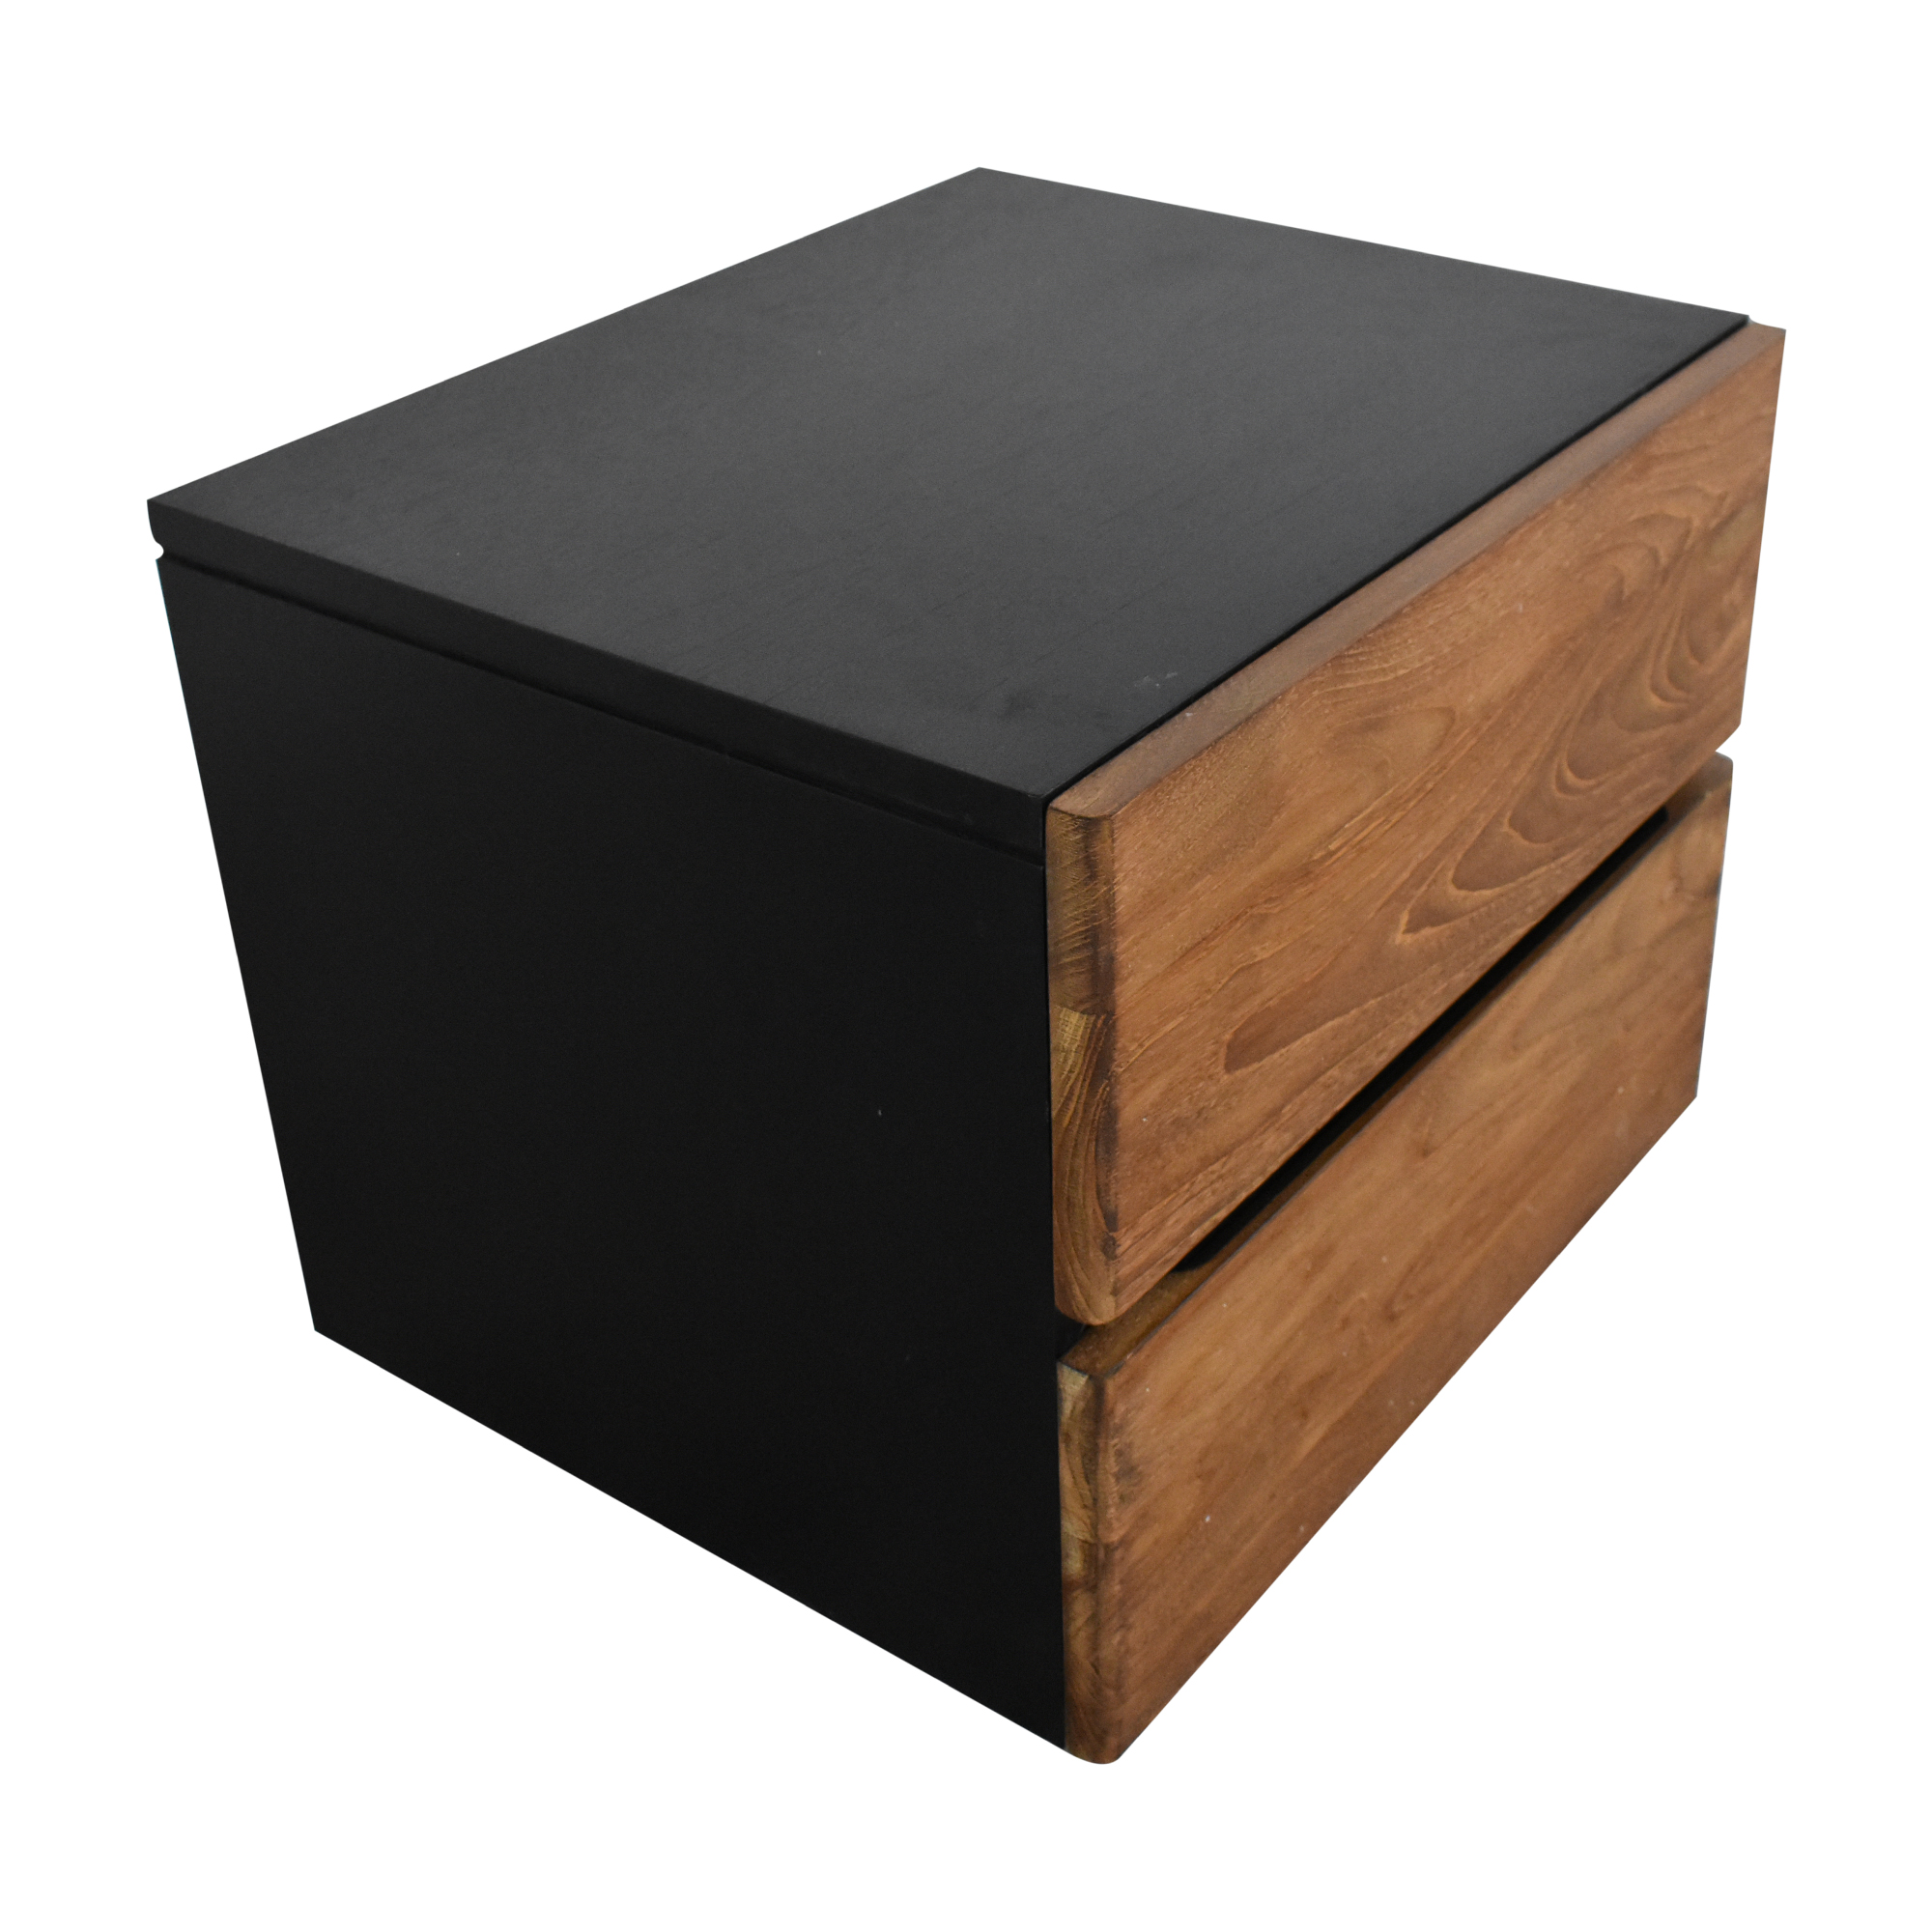 ABC Carpet & Home ABC Carpet & Home Two Tone Nightstand End Tables